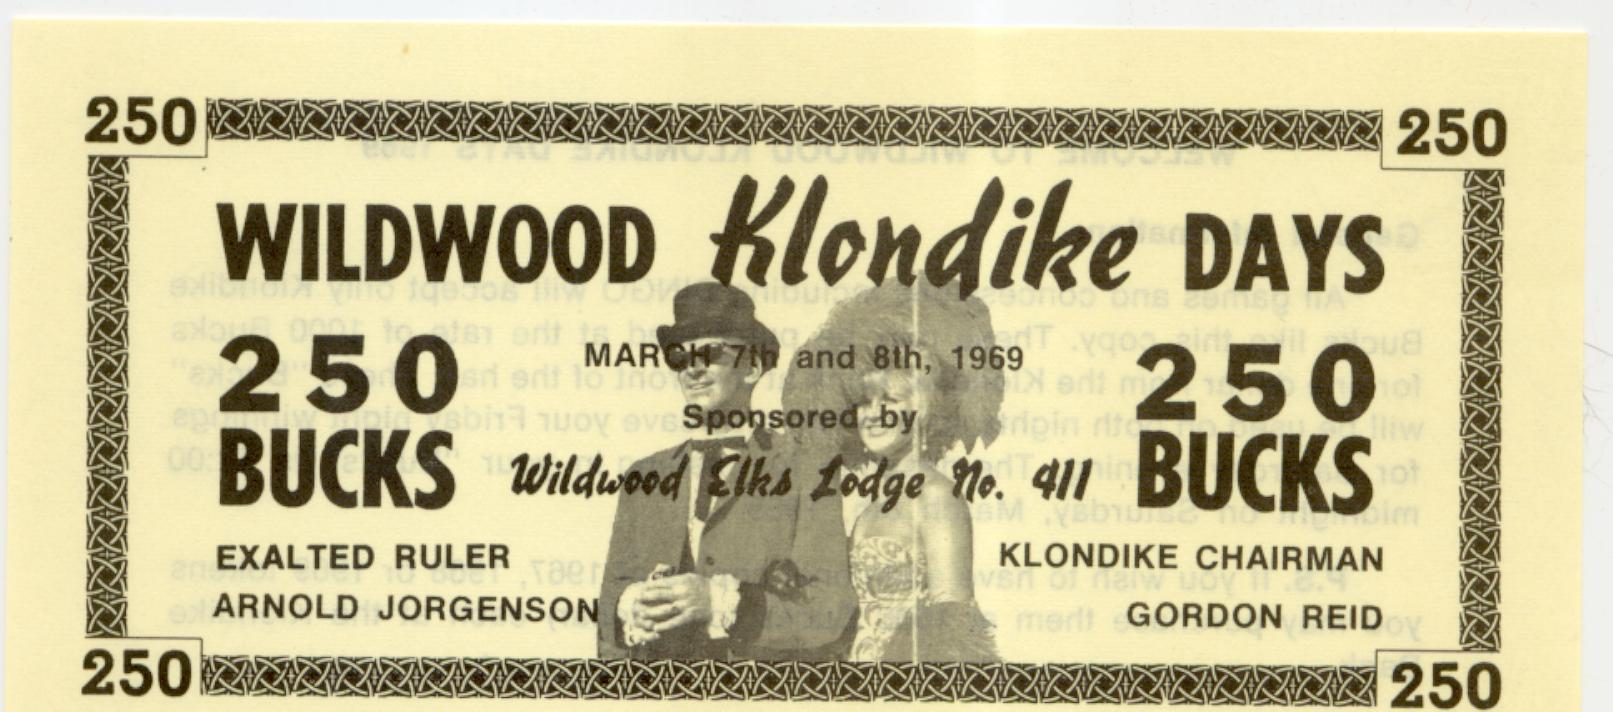 1969 Wildwood Alberta Klondike Days 250 bucks